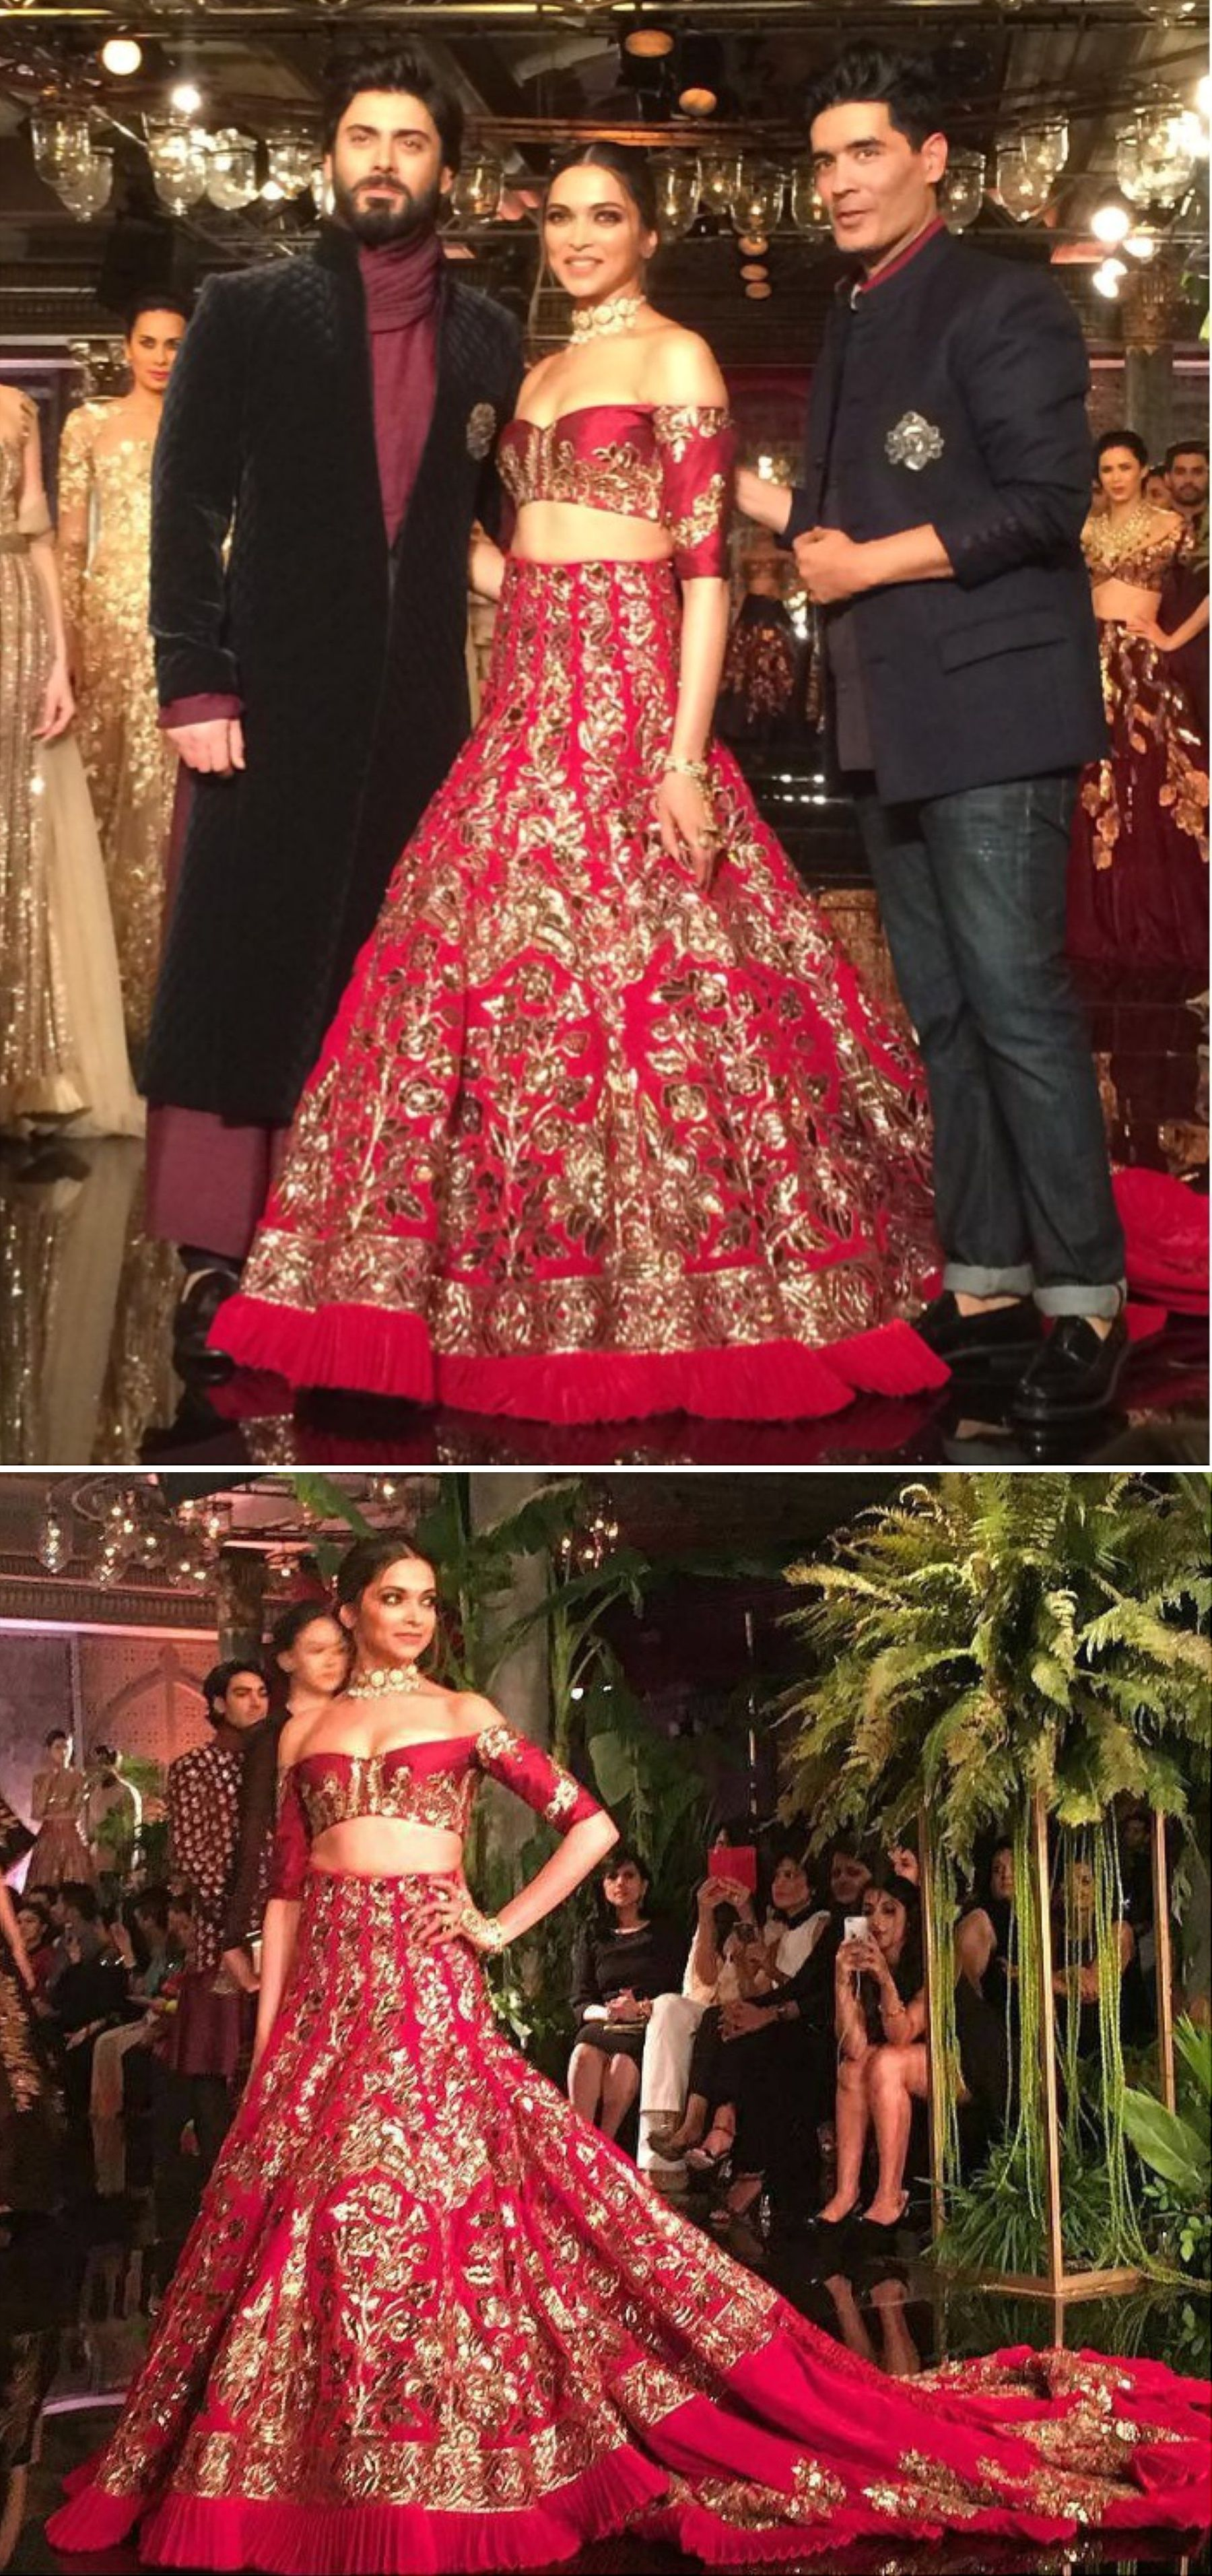 Wedding Outfit Inspiration Deep Wine Red And Gold Lehenga Fawad Khan Choker Necklace Indian Manish Malhotra Bridal Indian Bridal Indian Wedding Outfits